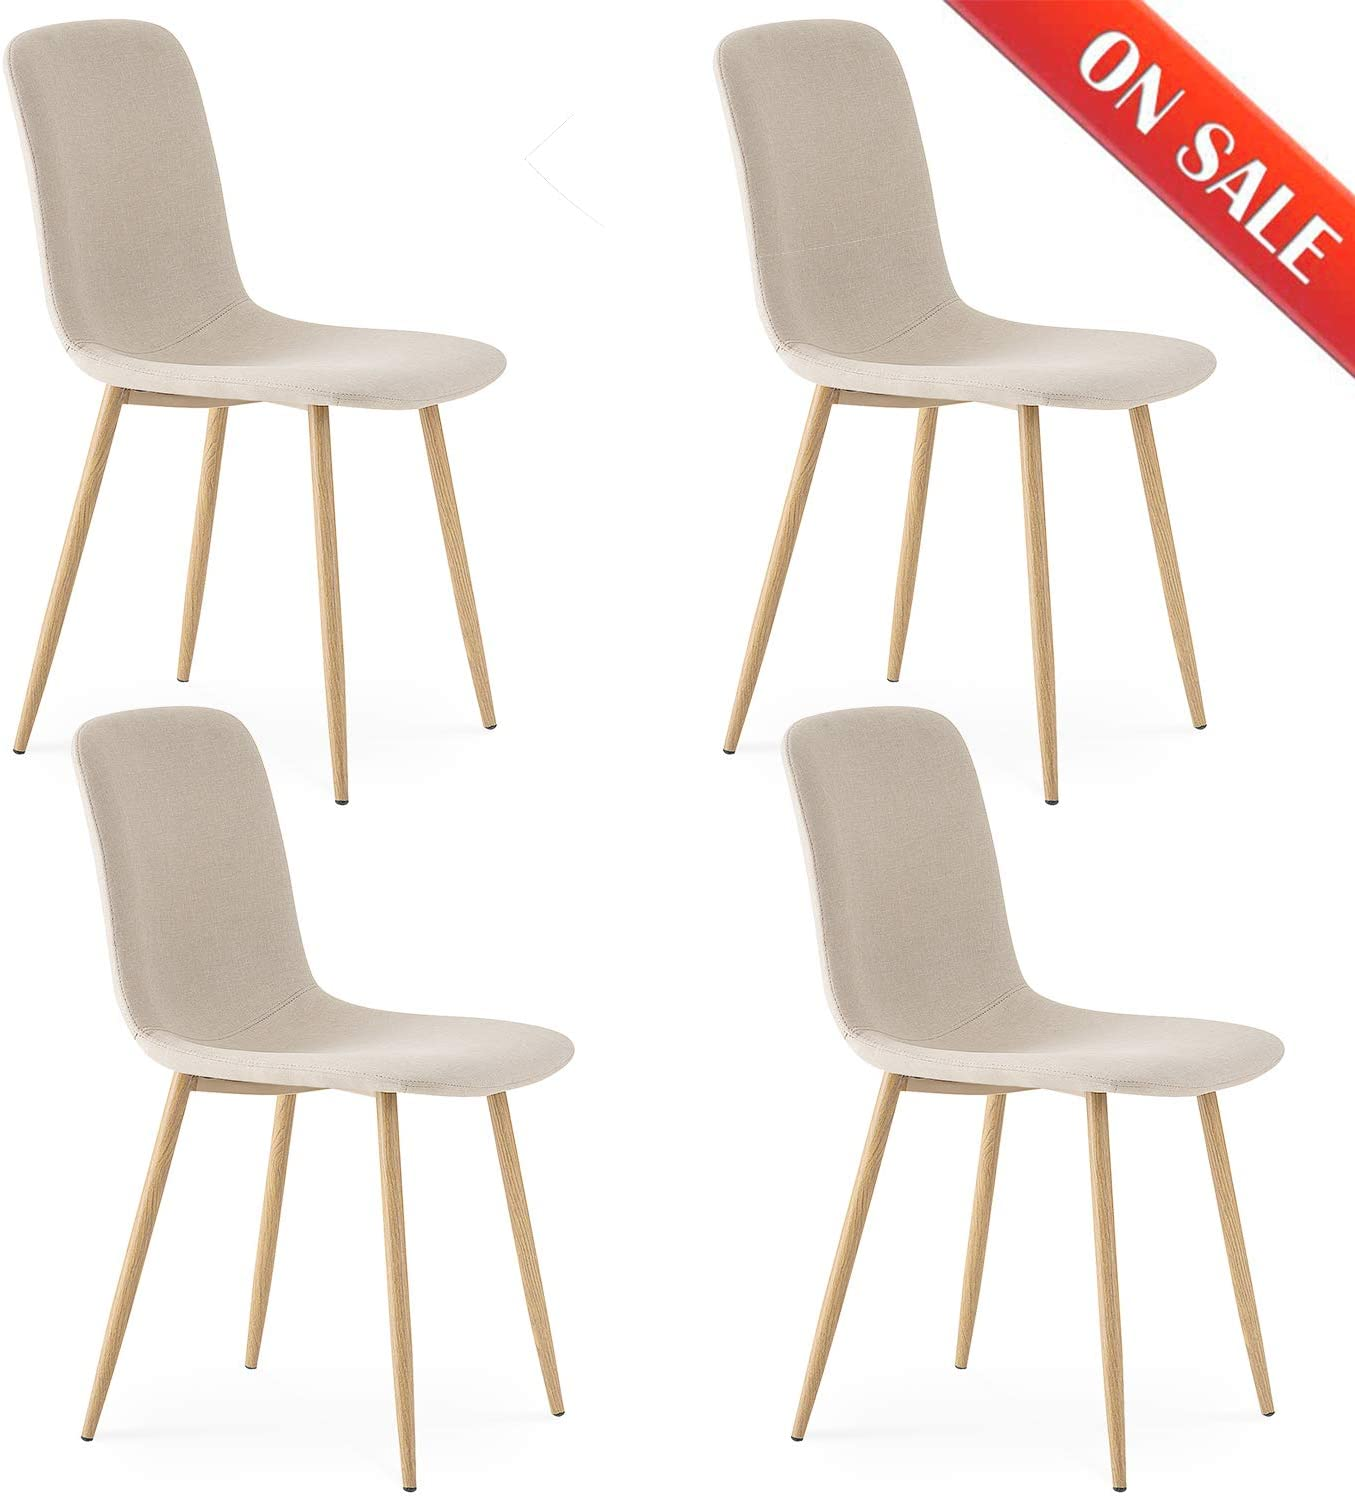 LIFE CARVER Dining Chairs Set of 12 Beige Kitchen Chairs Fabric Solid Metal  Chairs for Dining Room Chairs Beige